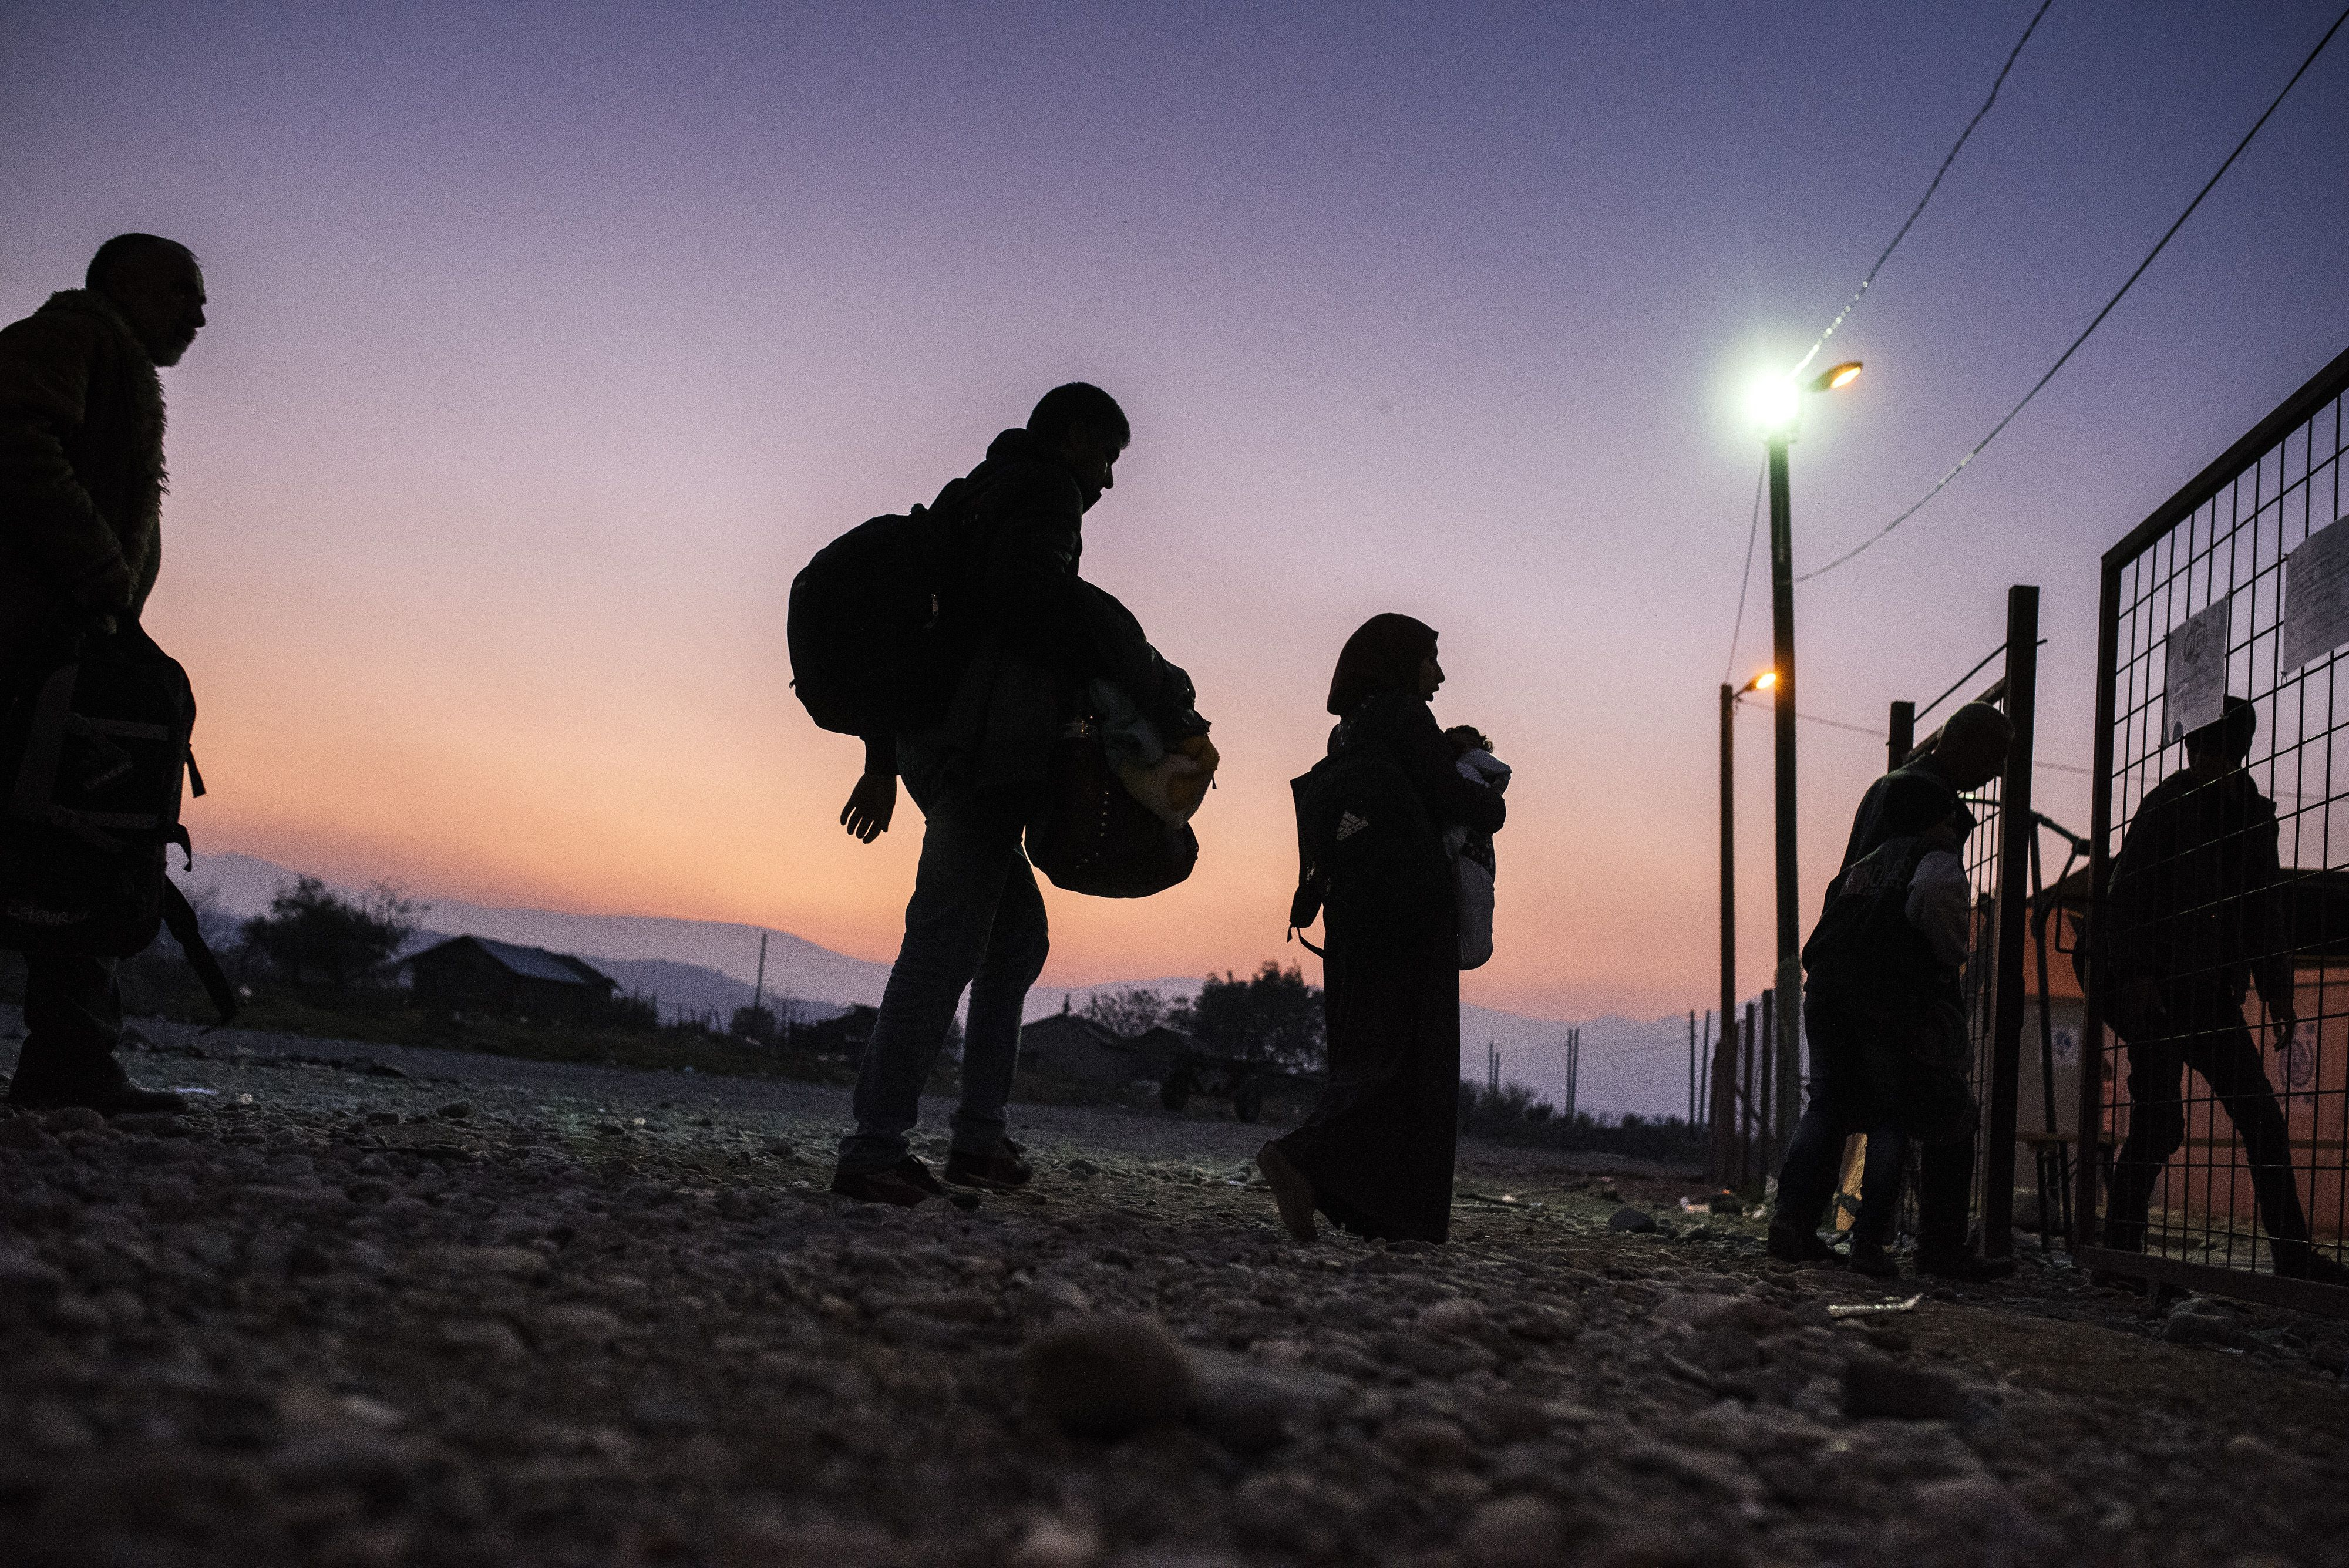 Migrants and refugees enter a registration camp after crossing the Greek-Macedonian border near Gevgelija, Macedonia on Nov. 17, 2015.